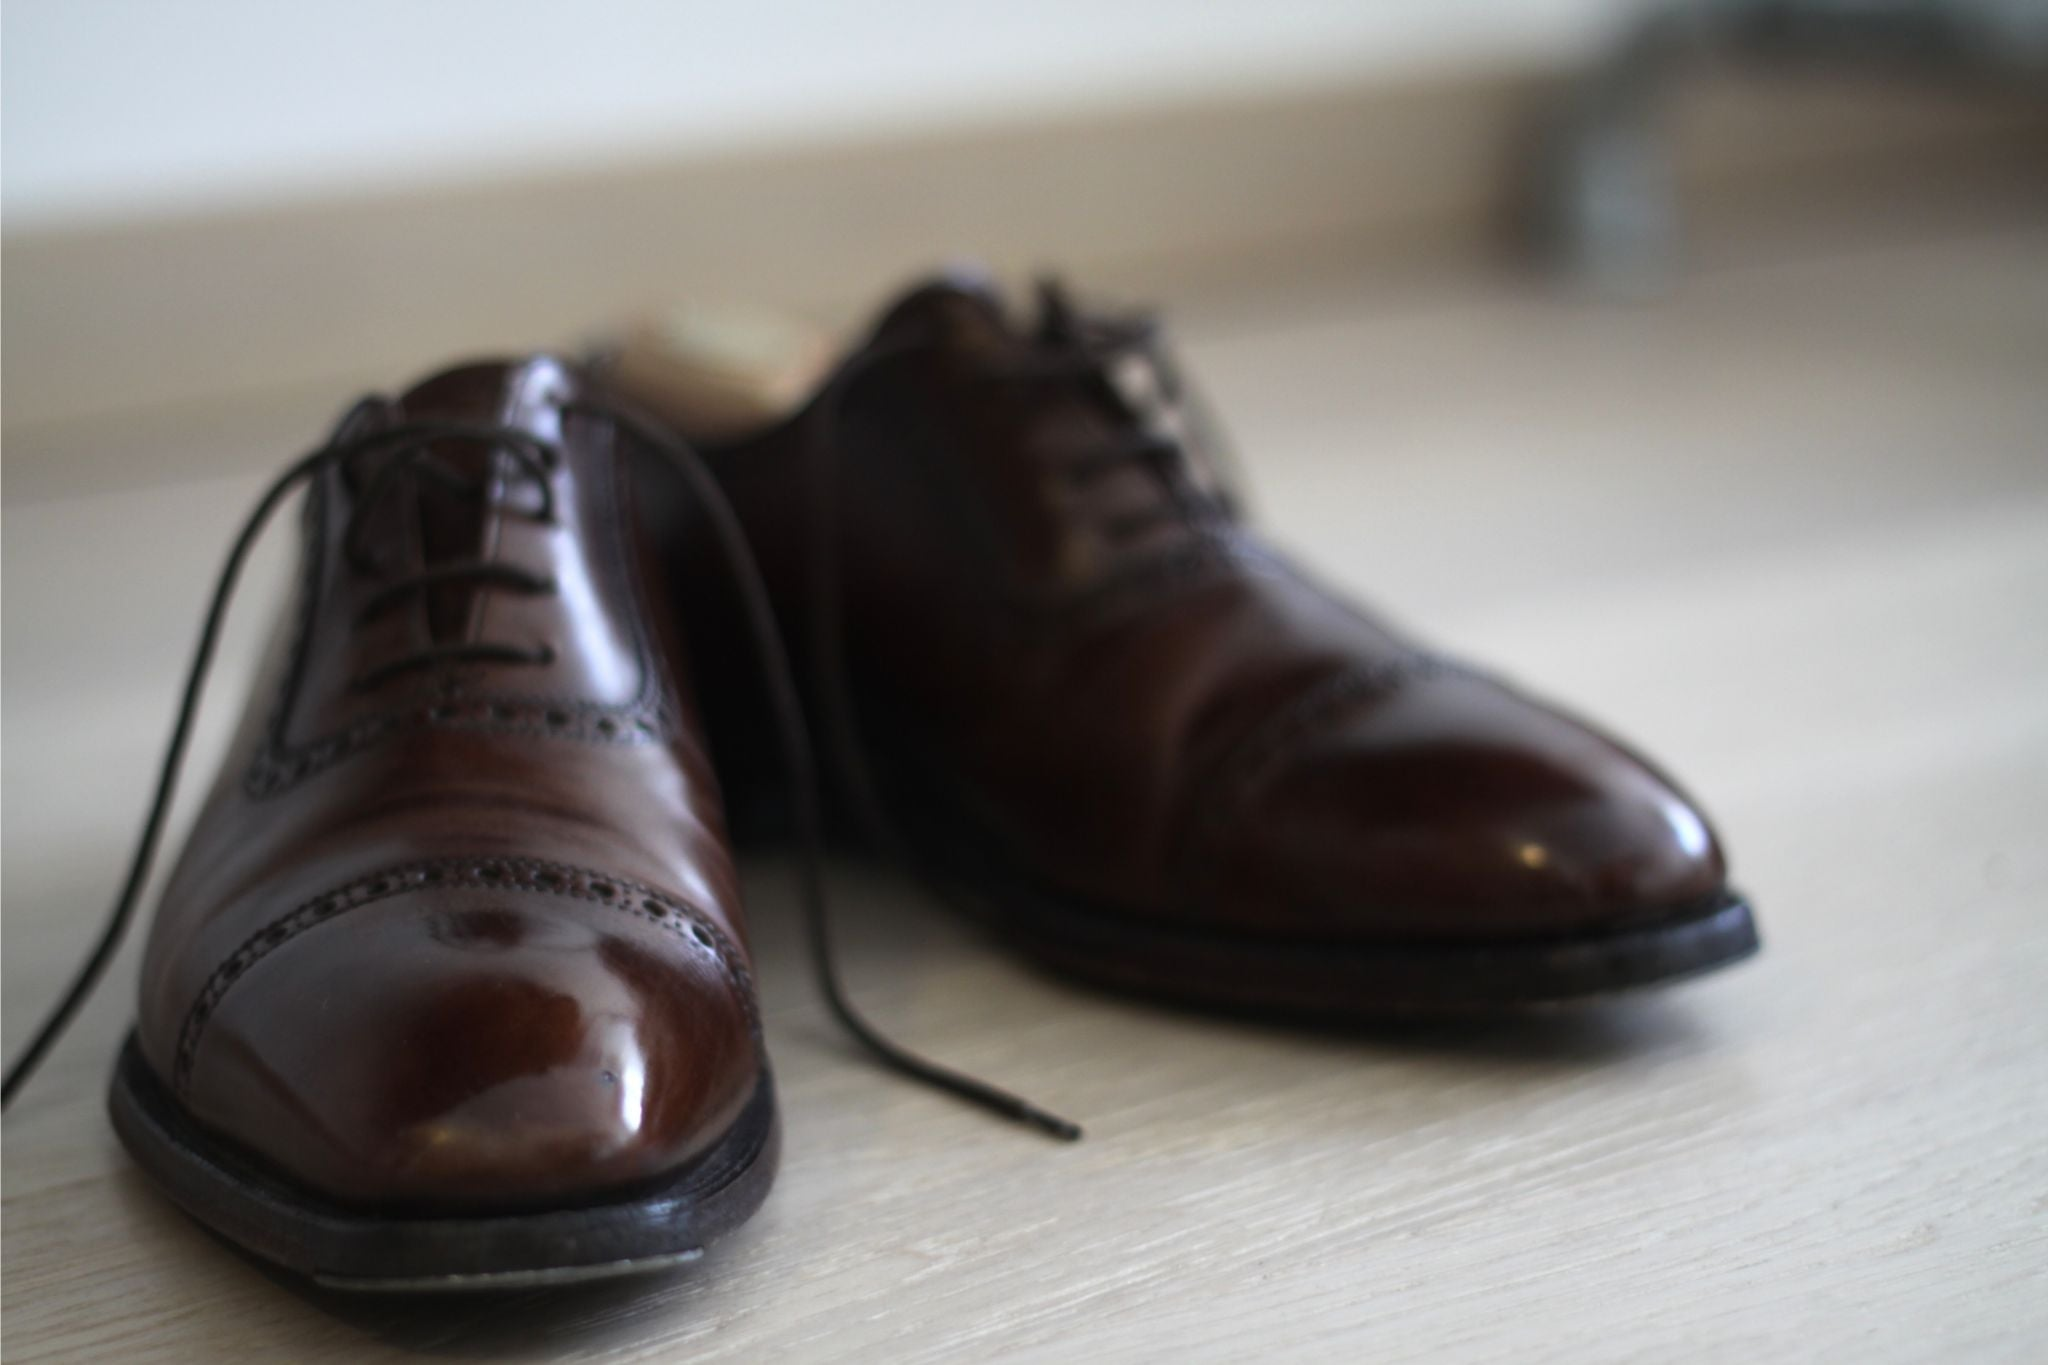 Spit shine - Crockett&Jones for Paul Smith brown oxfords